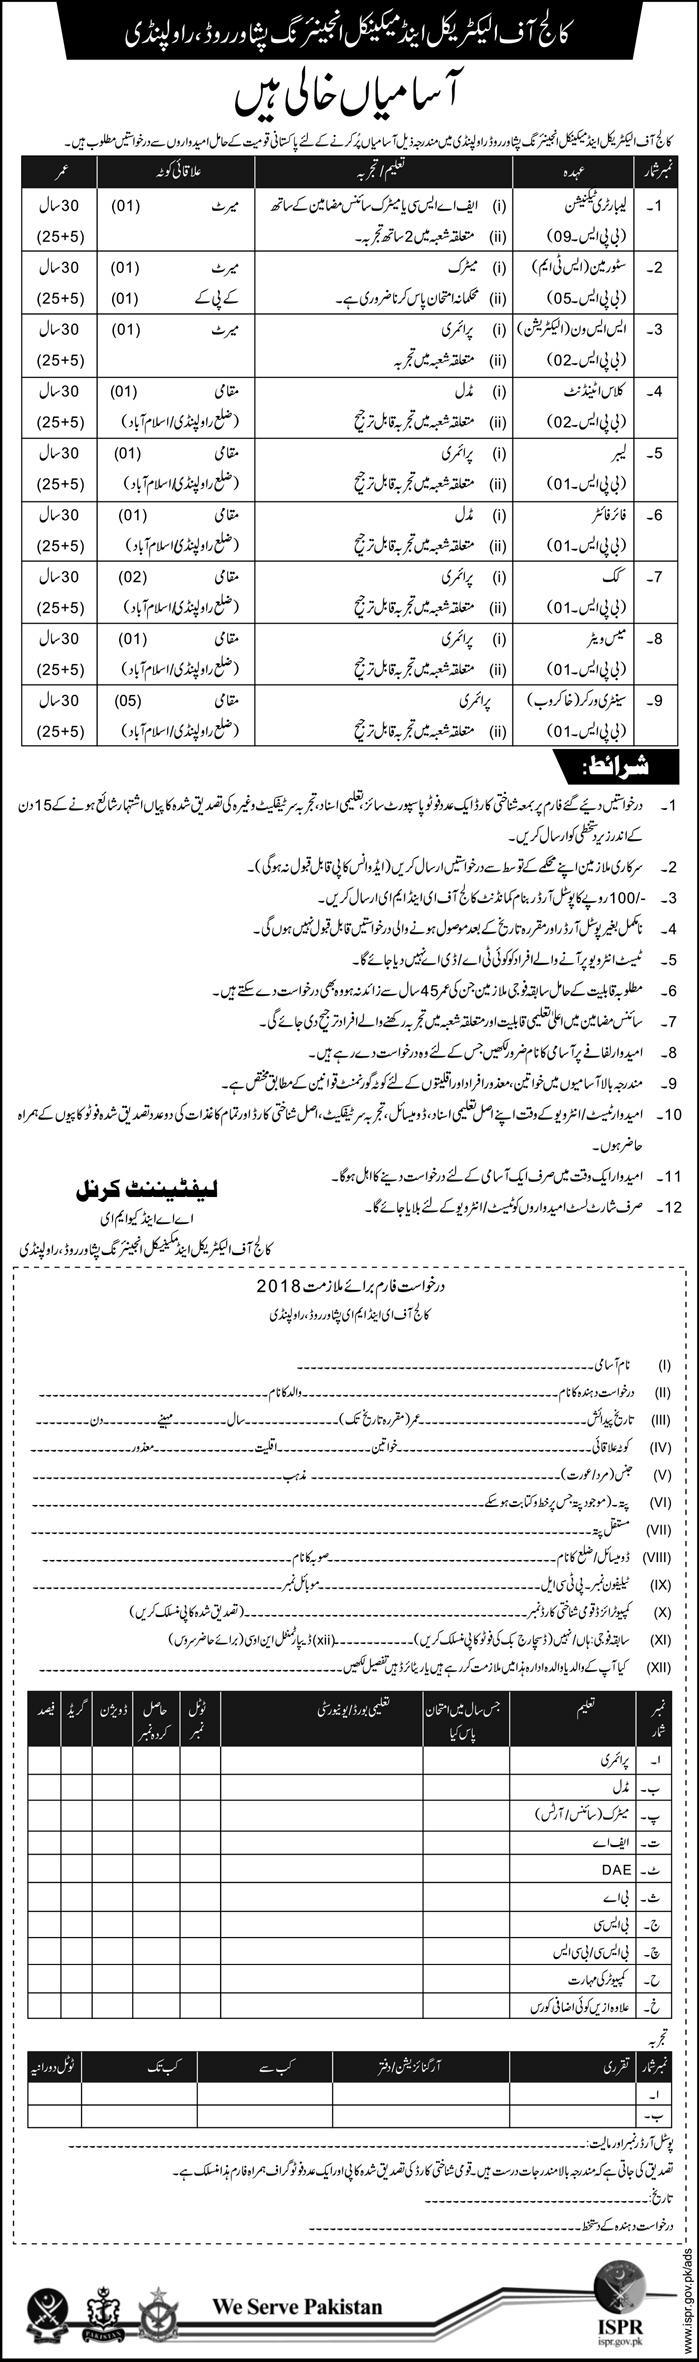 College of Electrical & Mechanical Engineering Rawalpindi 15 Jobs 11 February 2018 Daily Express Newspaper